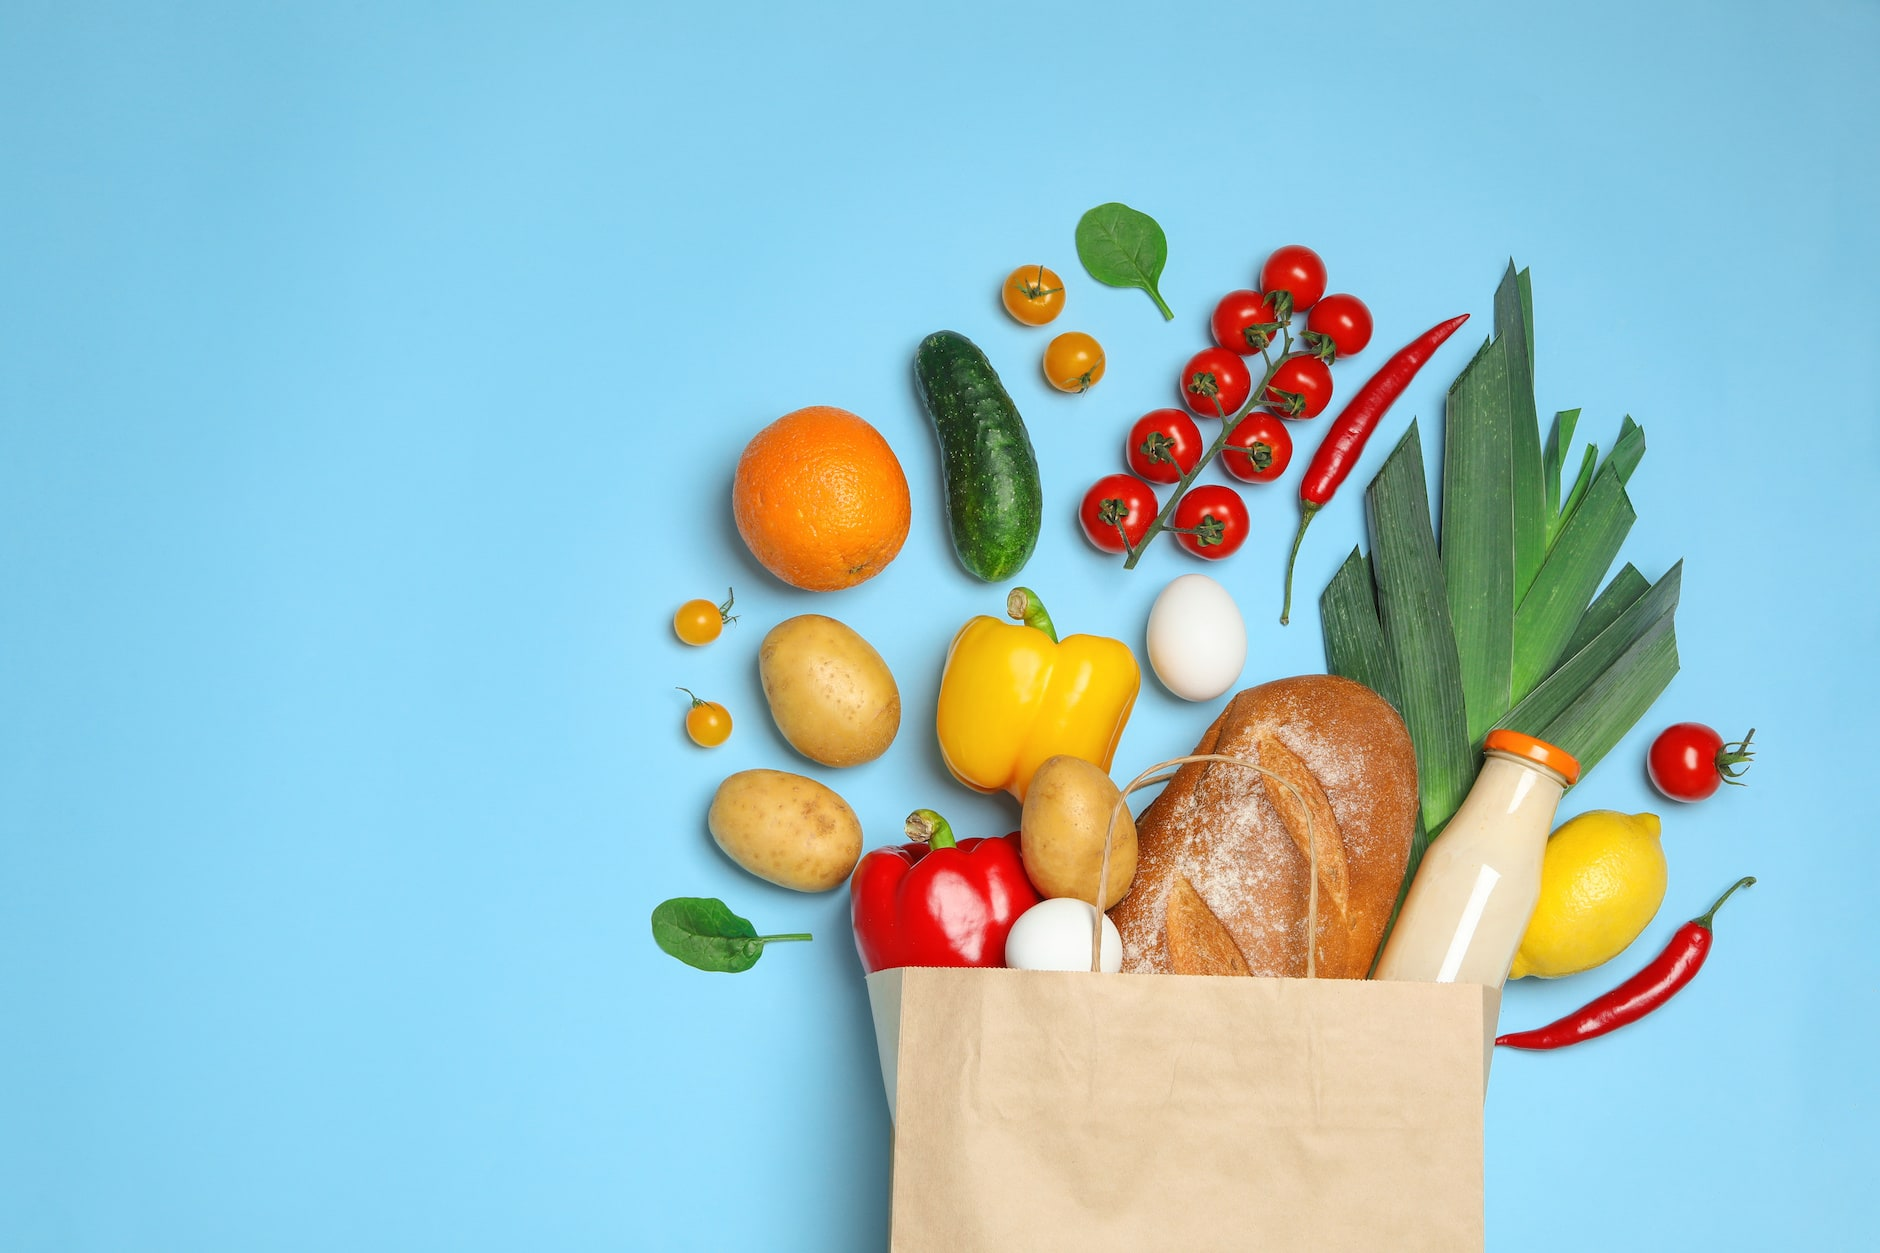 25 Tricks To Make Your Groceries Last Longerimage preview